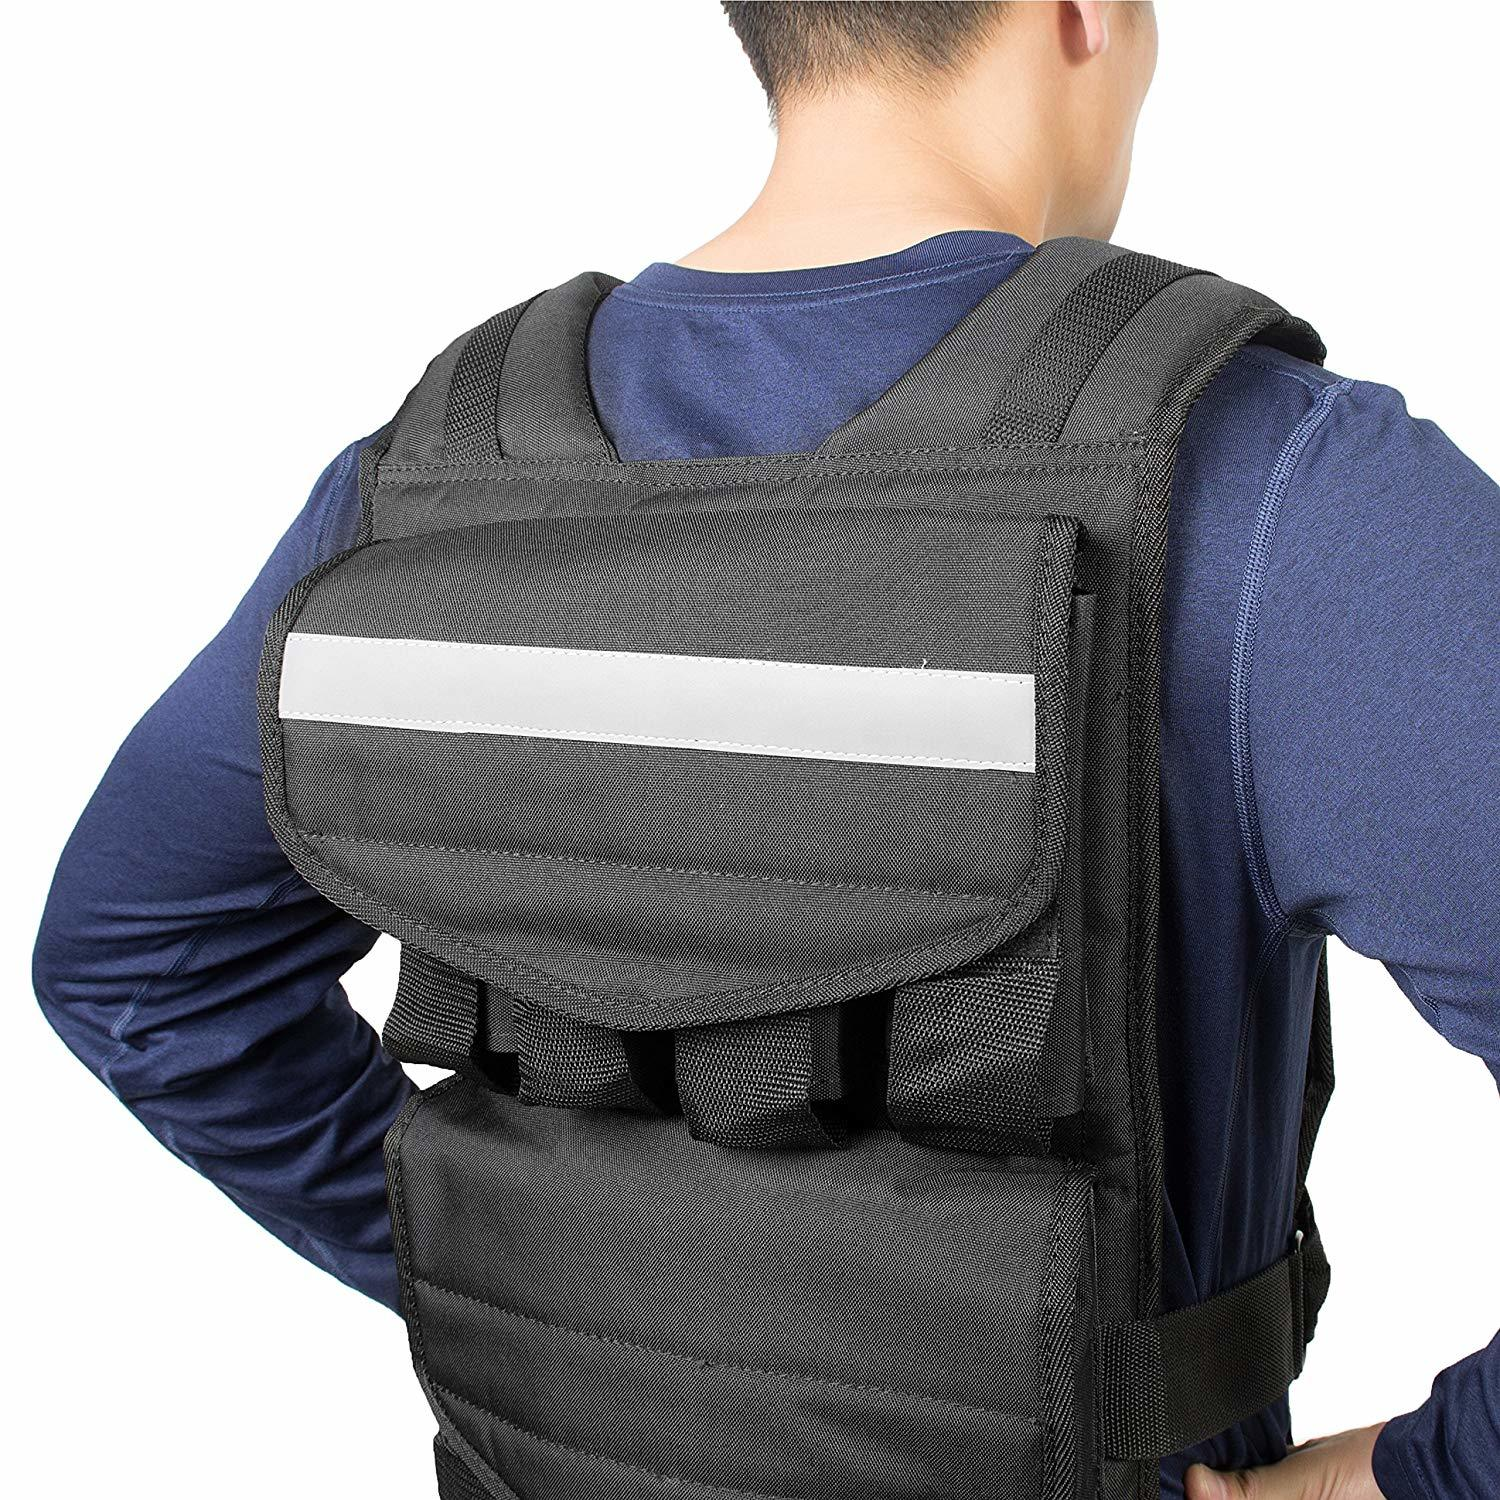 4 best weighted vests for running and crossfit that will change the way U train 10